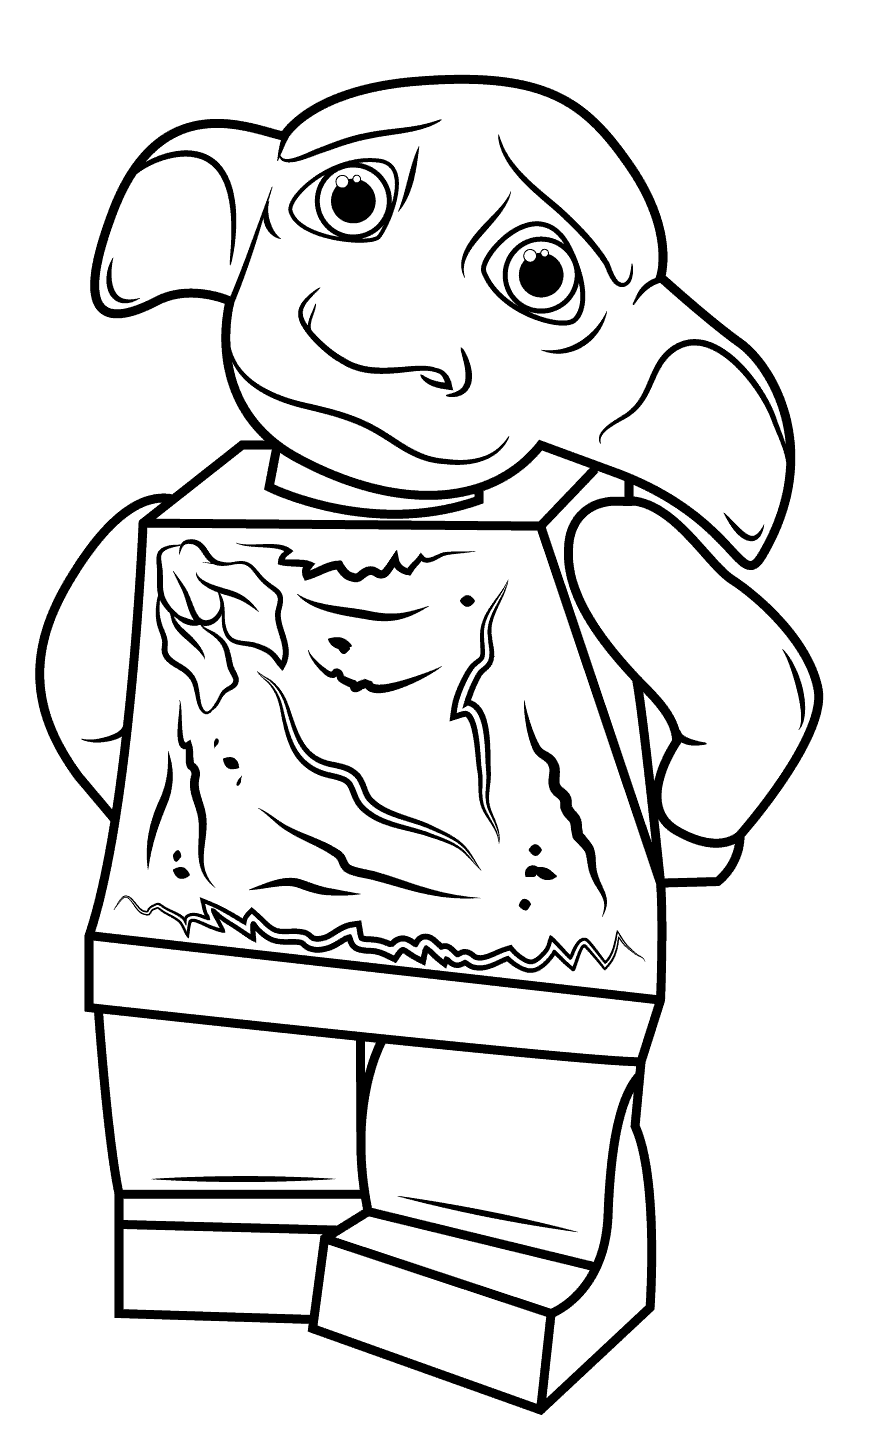 Dobby Harry Potter Lego Colouring Page Printable Dobby Harry Potter Harry Potter Coloring Pages Lego Coloring Pages